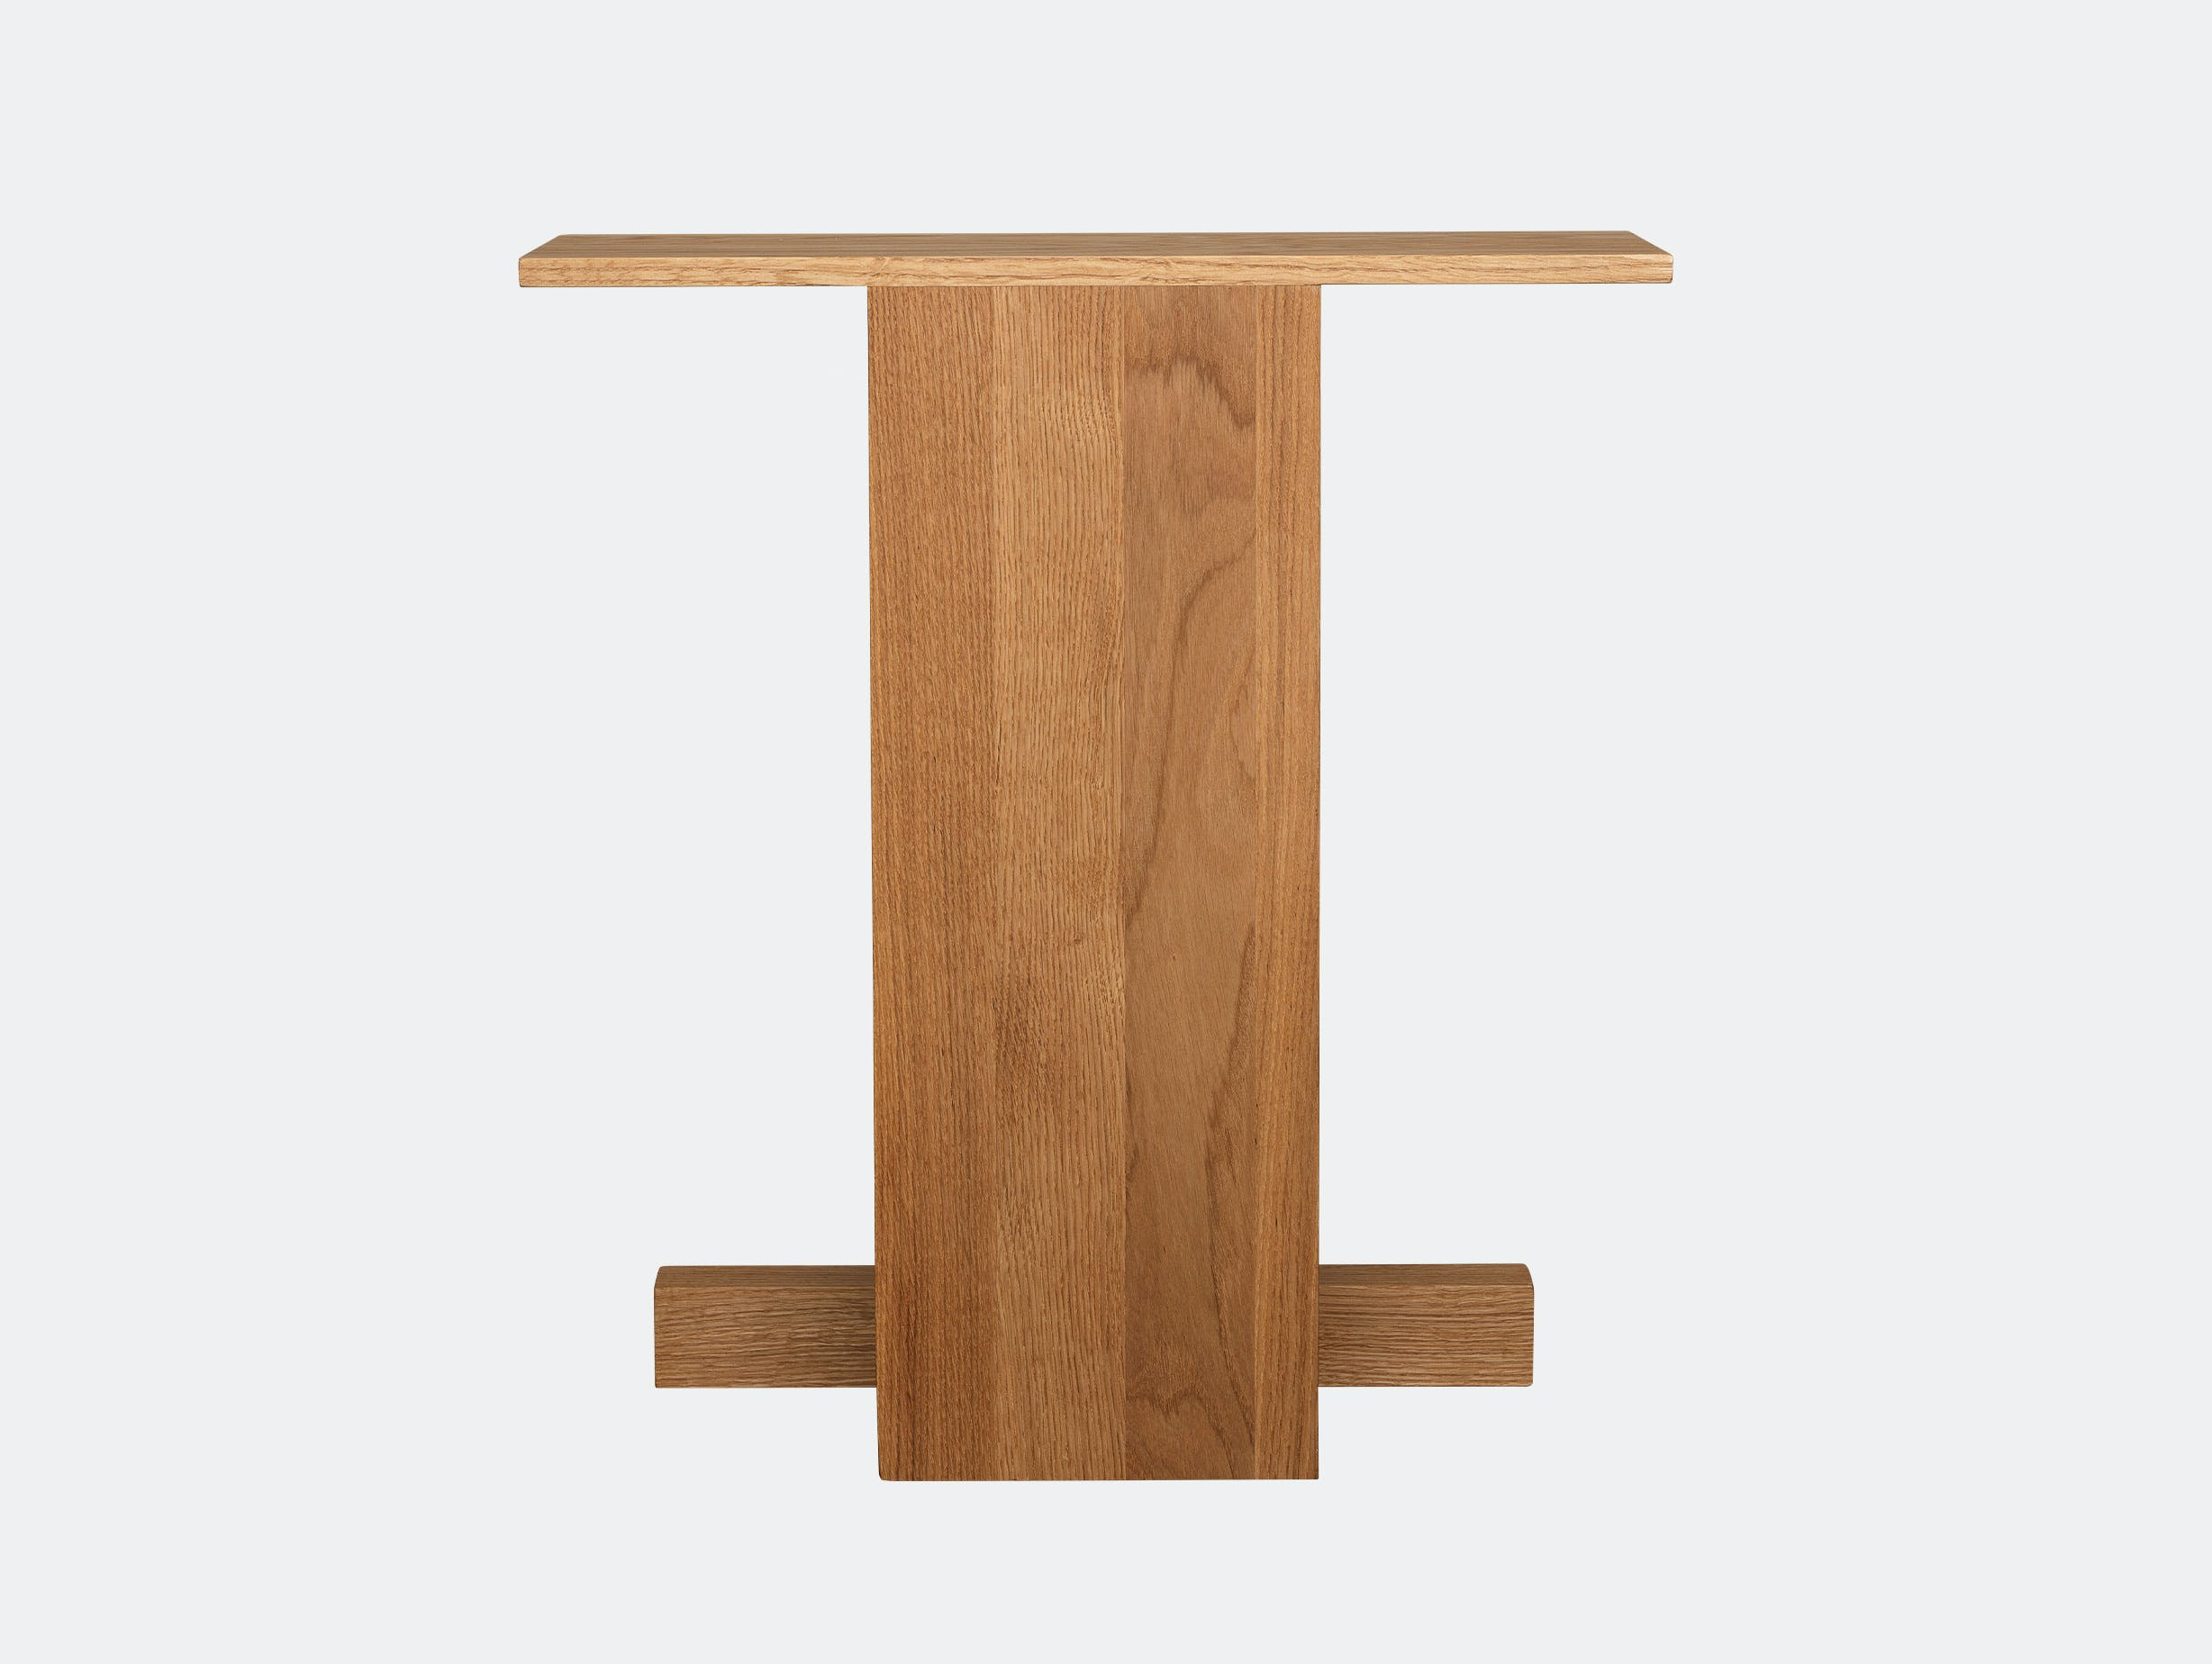 Fogia supersolid object 4 oak